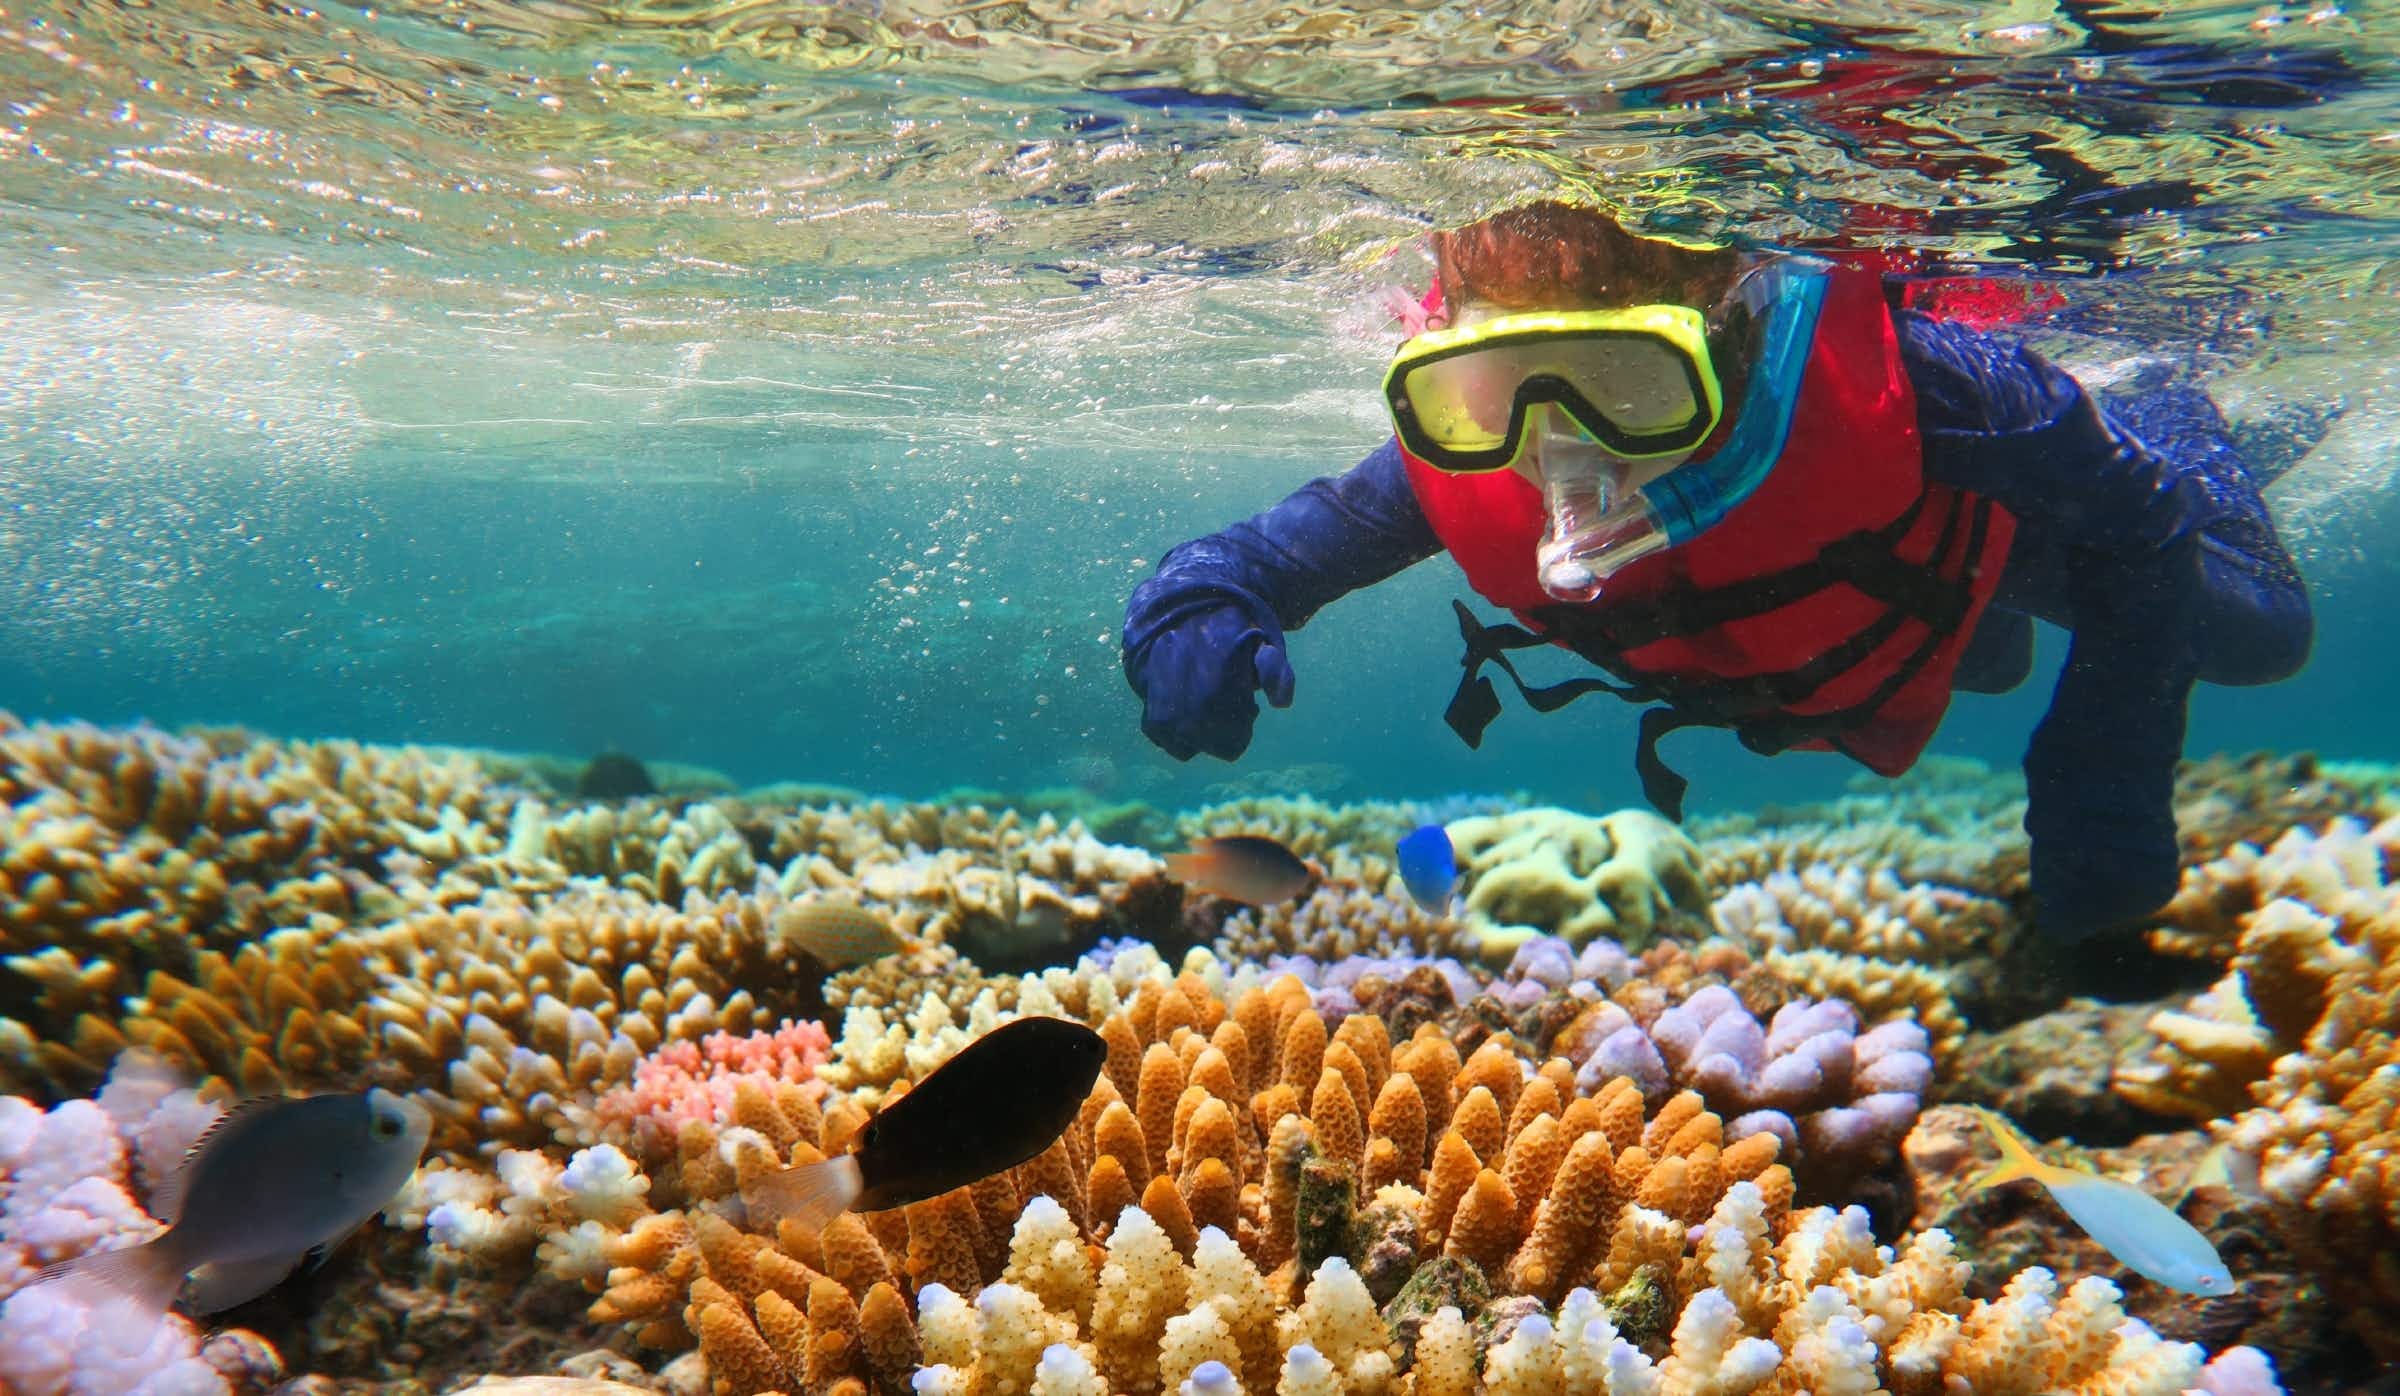 A six-week internship is on offer to work with conservationists of the Great Barrier Reef